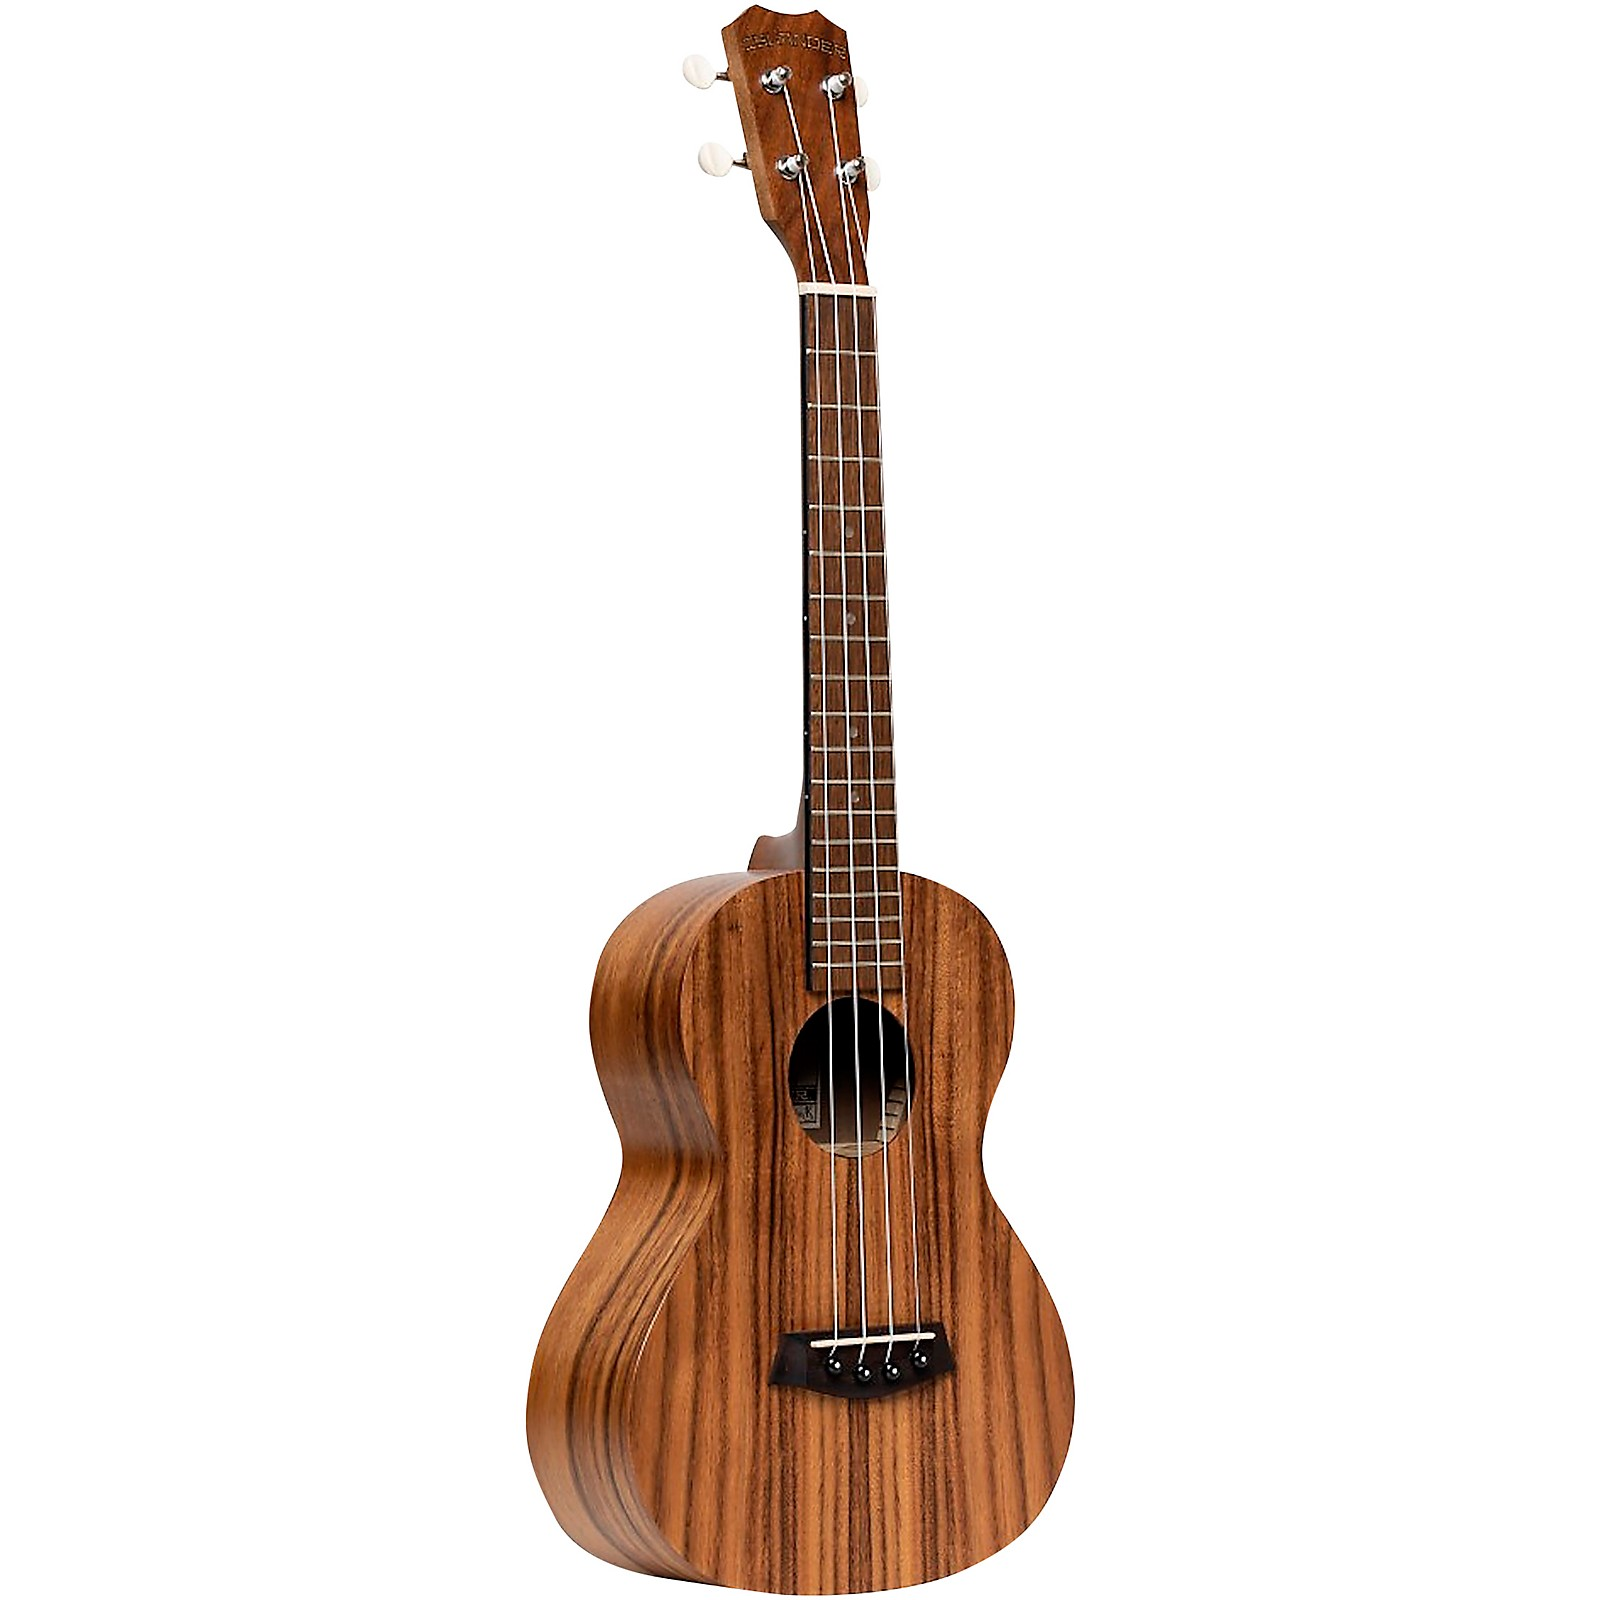 Islander AT-4 Acacia Traditional Tenor Ukulele